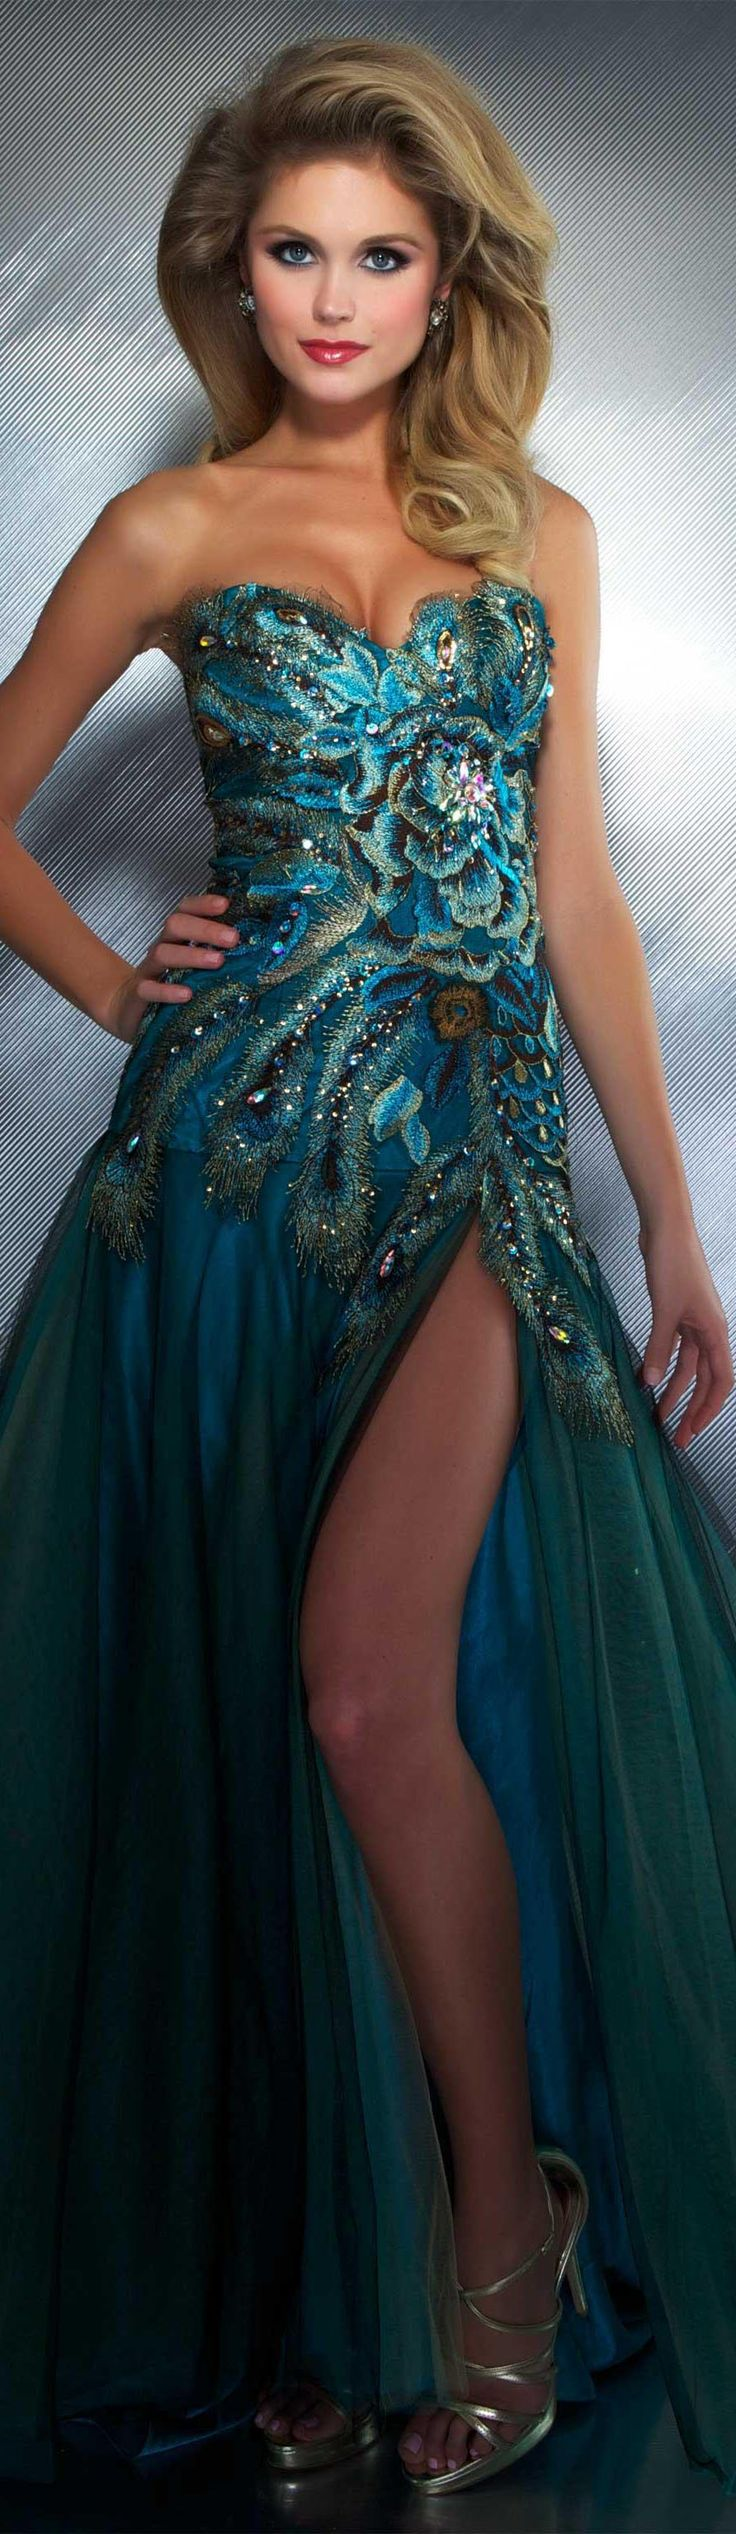 Mac Duggal couture dress peacock Style outfit clothing women @roressclothes apparel fashion amazing blue evening